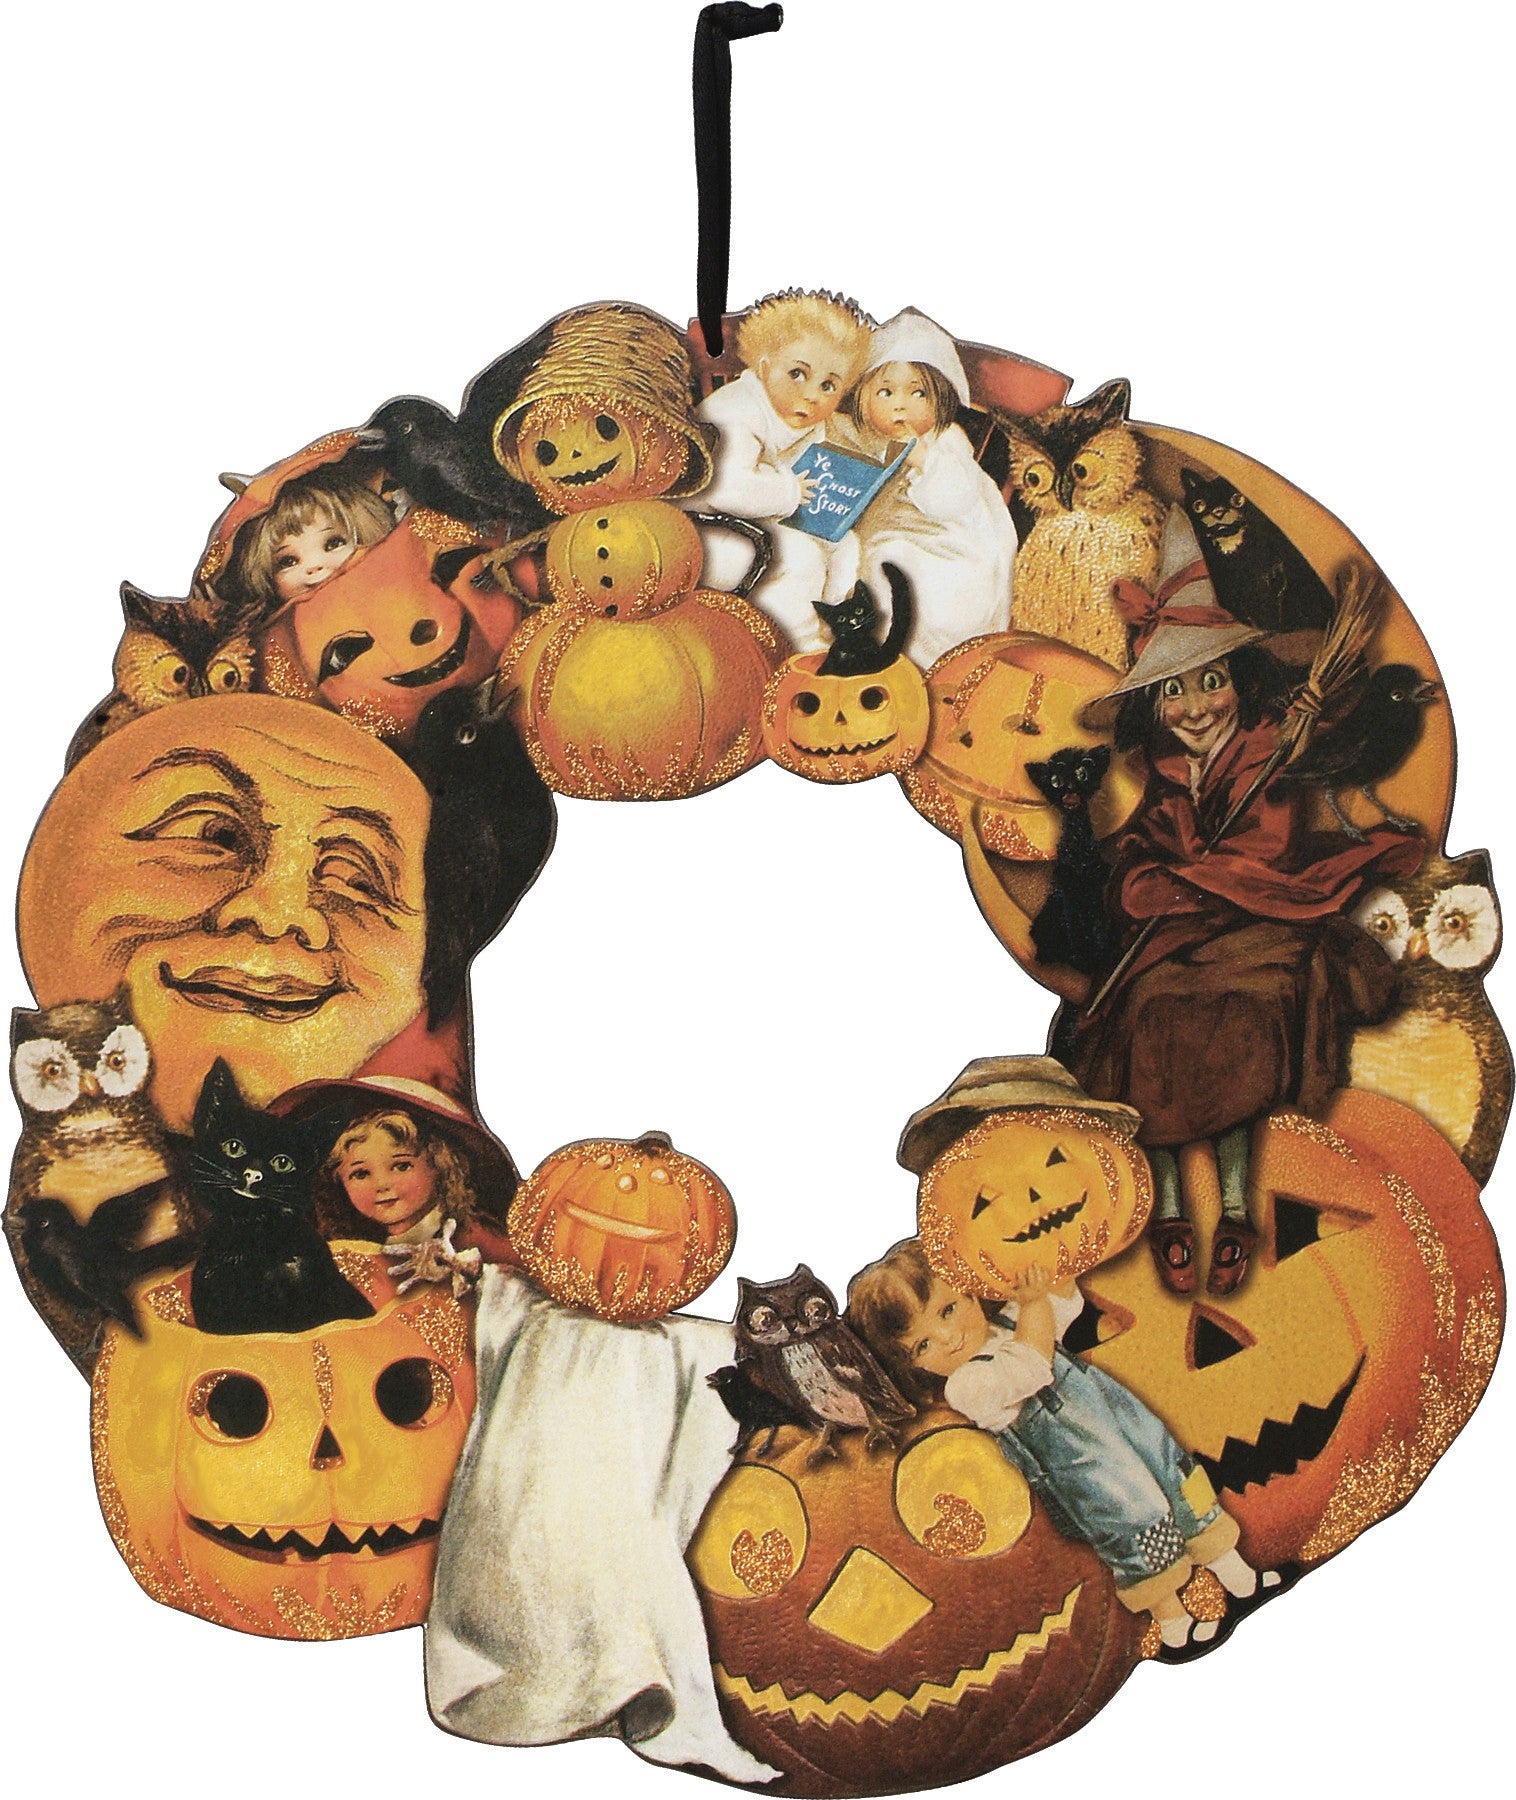 Vintage Halloween Wreath with a collage of post card images